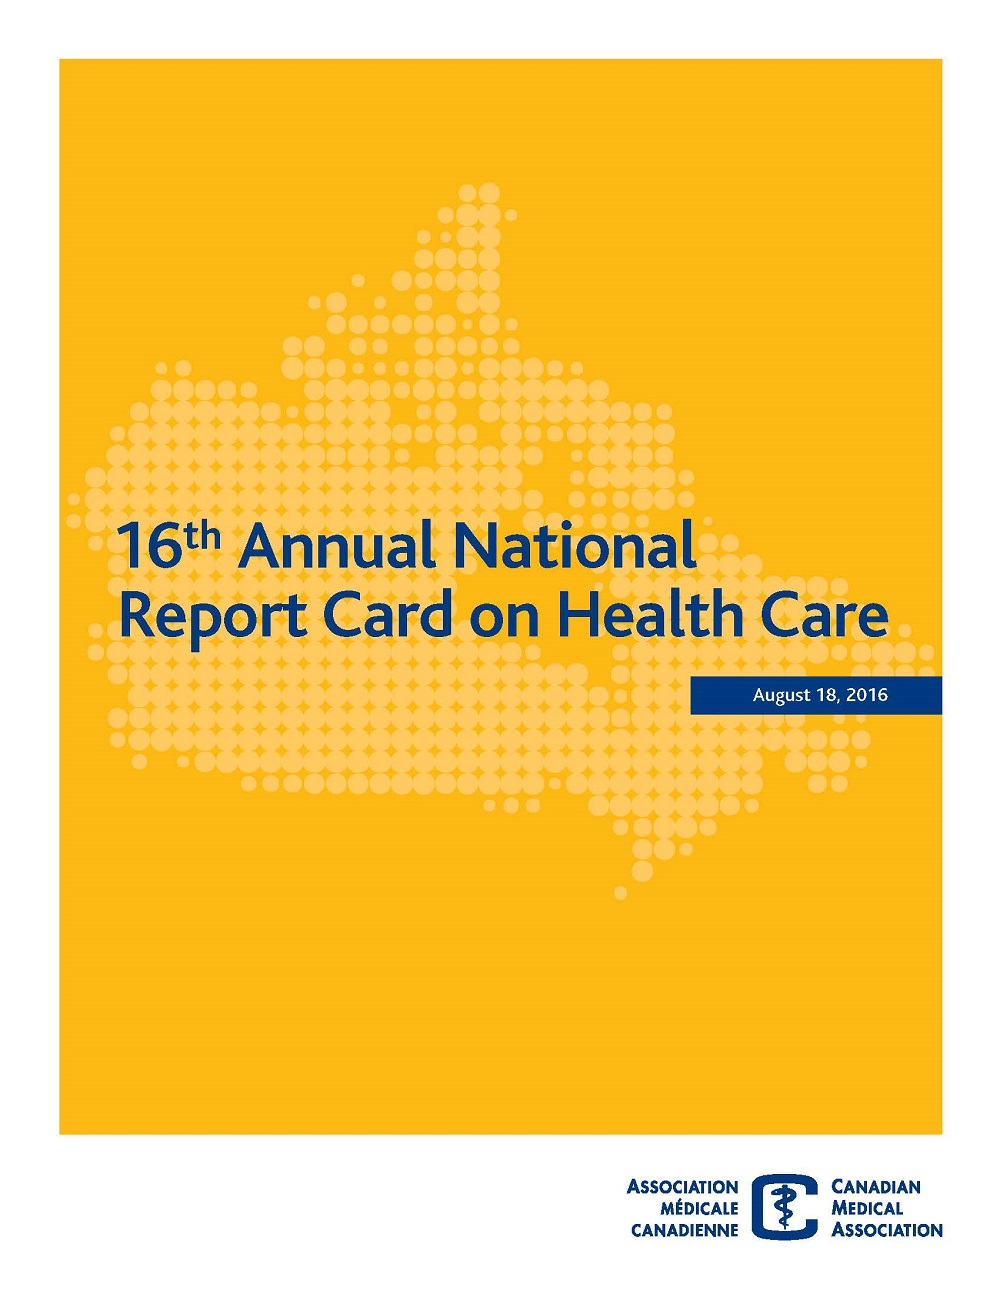 16th_Annual_National_Report_Card-on_Health_Care_en_1_.jpg